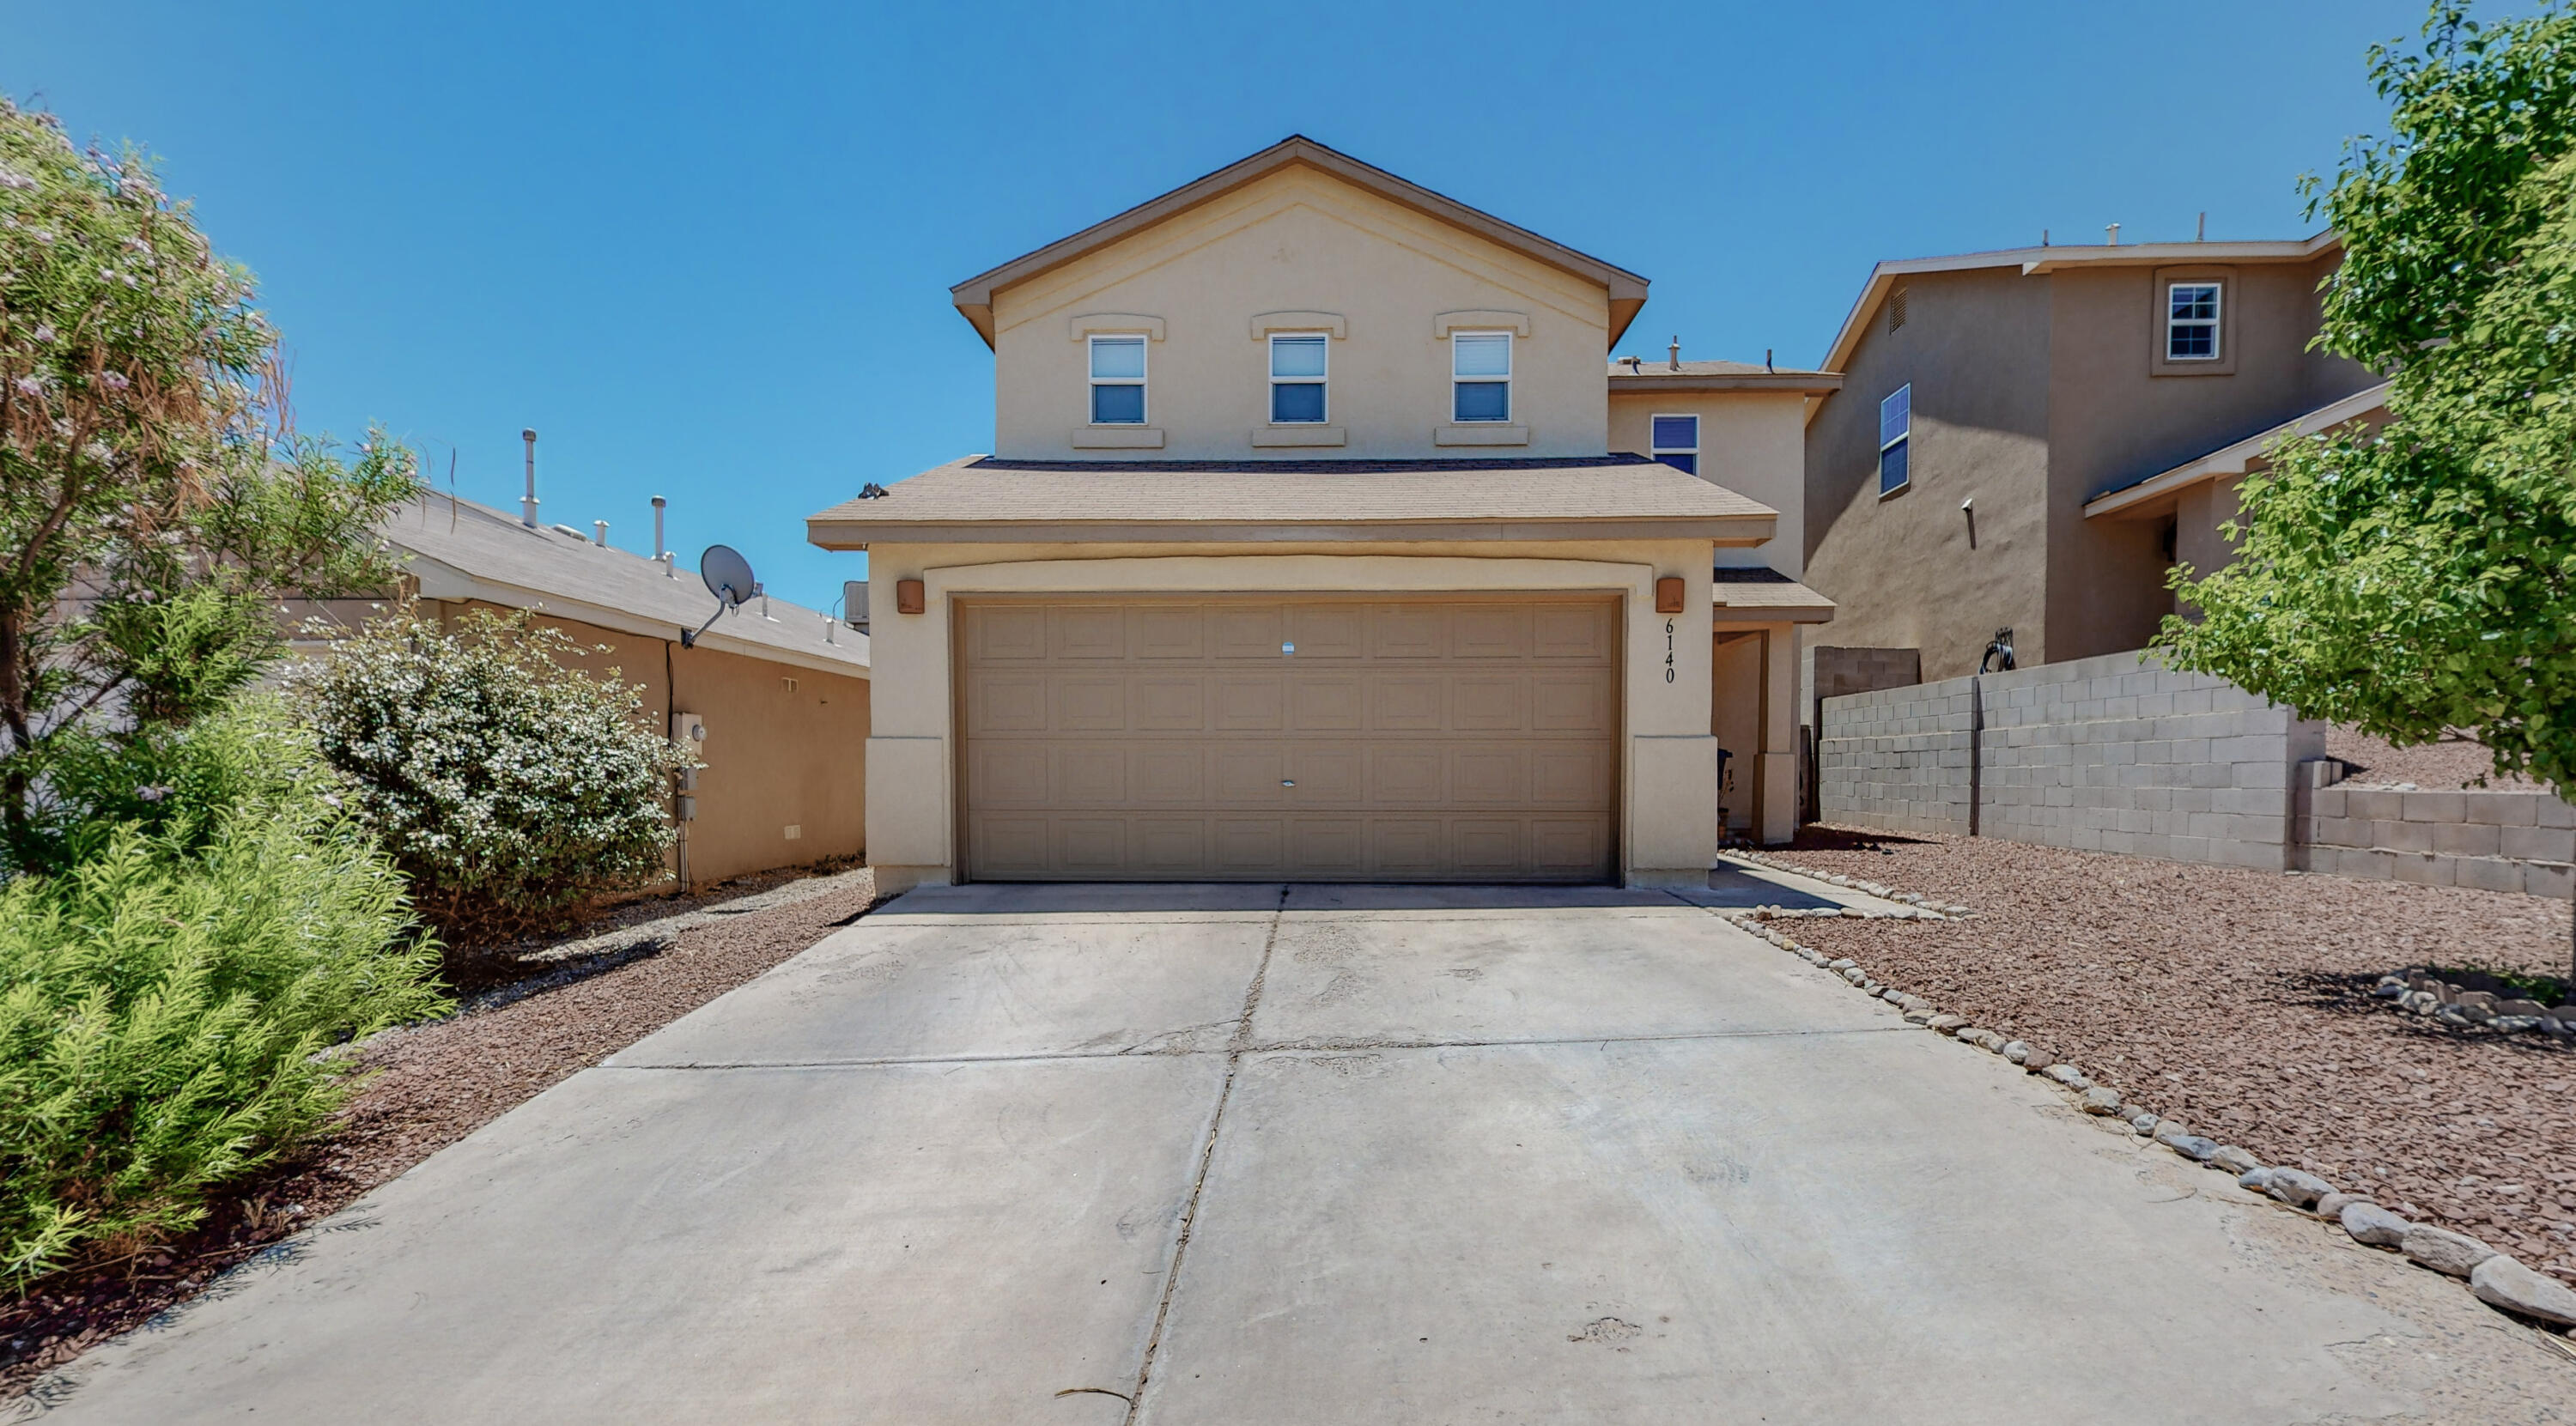 Check out this move in ready home in NW Albuquerque.  This home features 3 bedrooms, 2.5 bathrooms, and refrigerated air.  Home is located near a very nice park.  Nicely landscaped home is ready for new owners.  No showings until Friday and Saturday.  Ring doorbell and ring camera do not convey.  Please submit your highest and best offer.